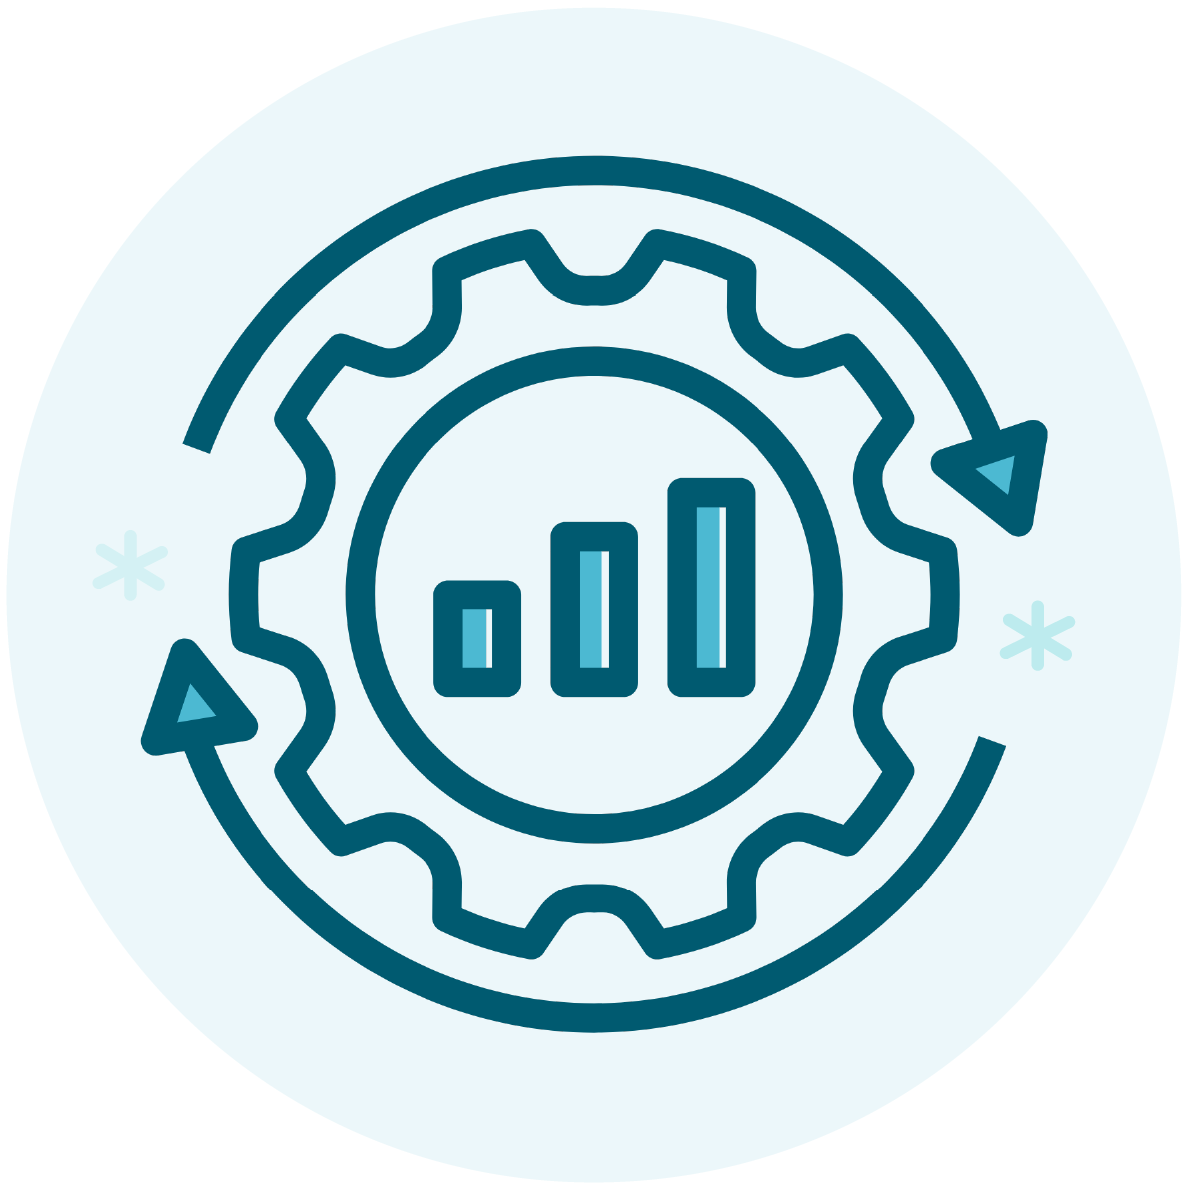 Optimize Your Content. Image contents: Outline of a gear icon with a bar graph in the center. The gear is surrounded by two circular arrows.